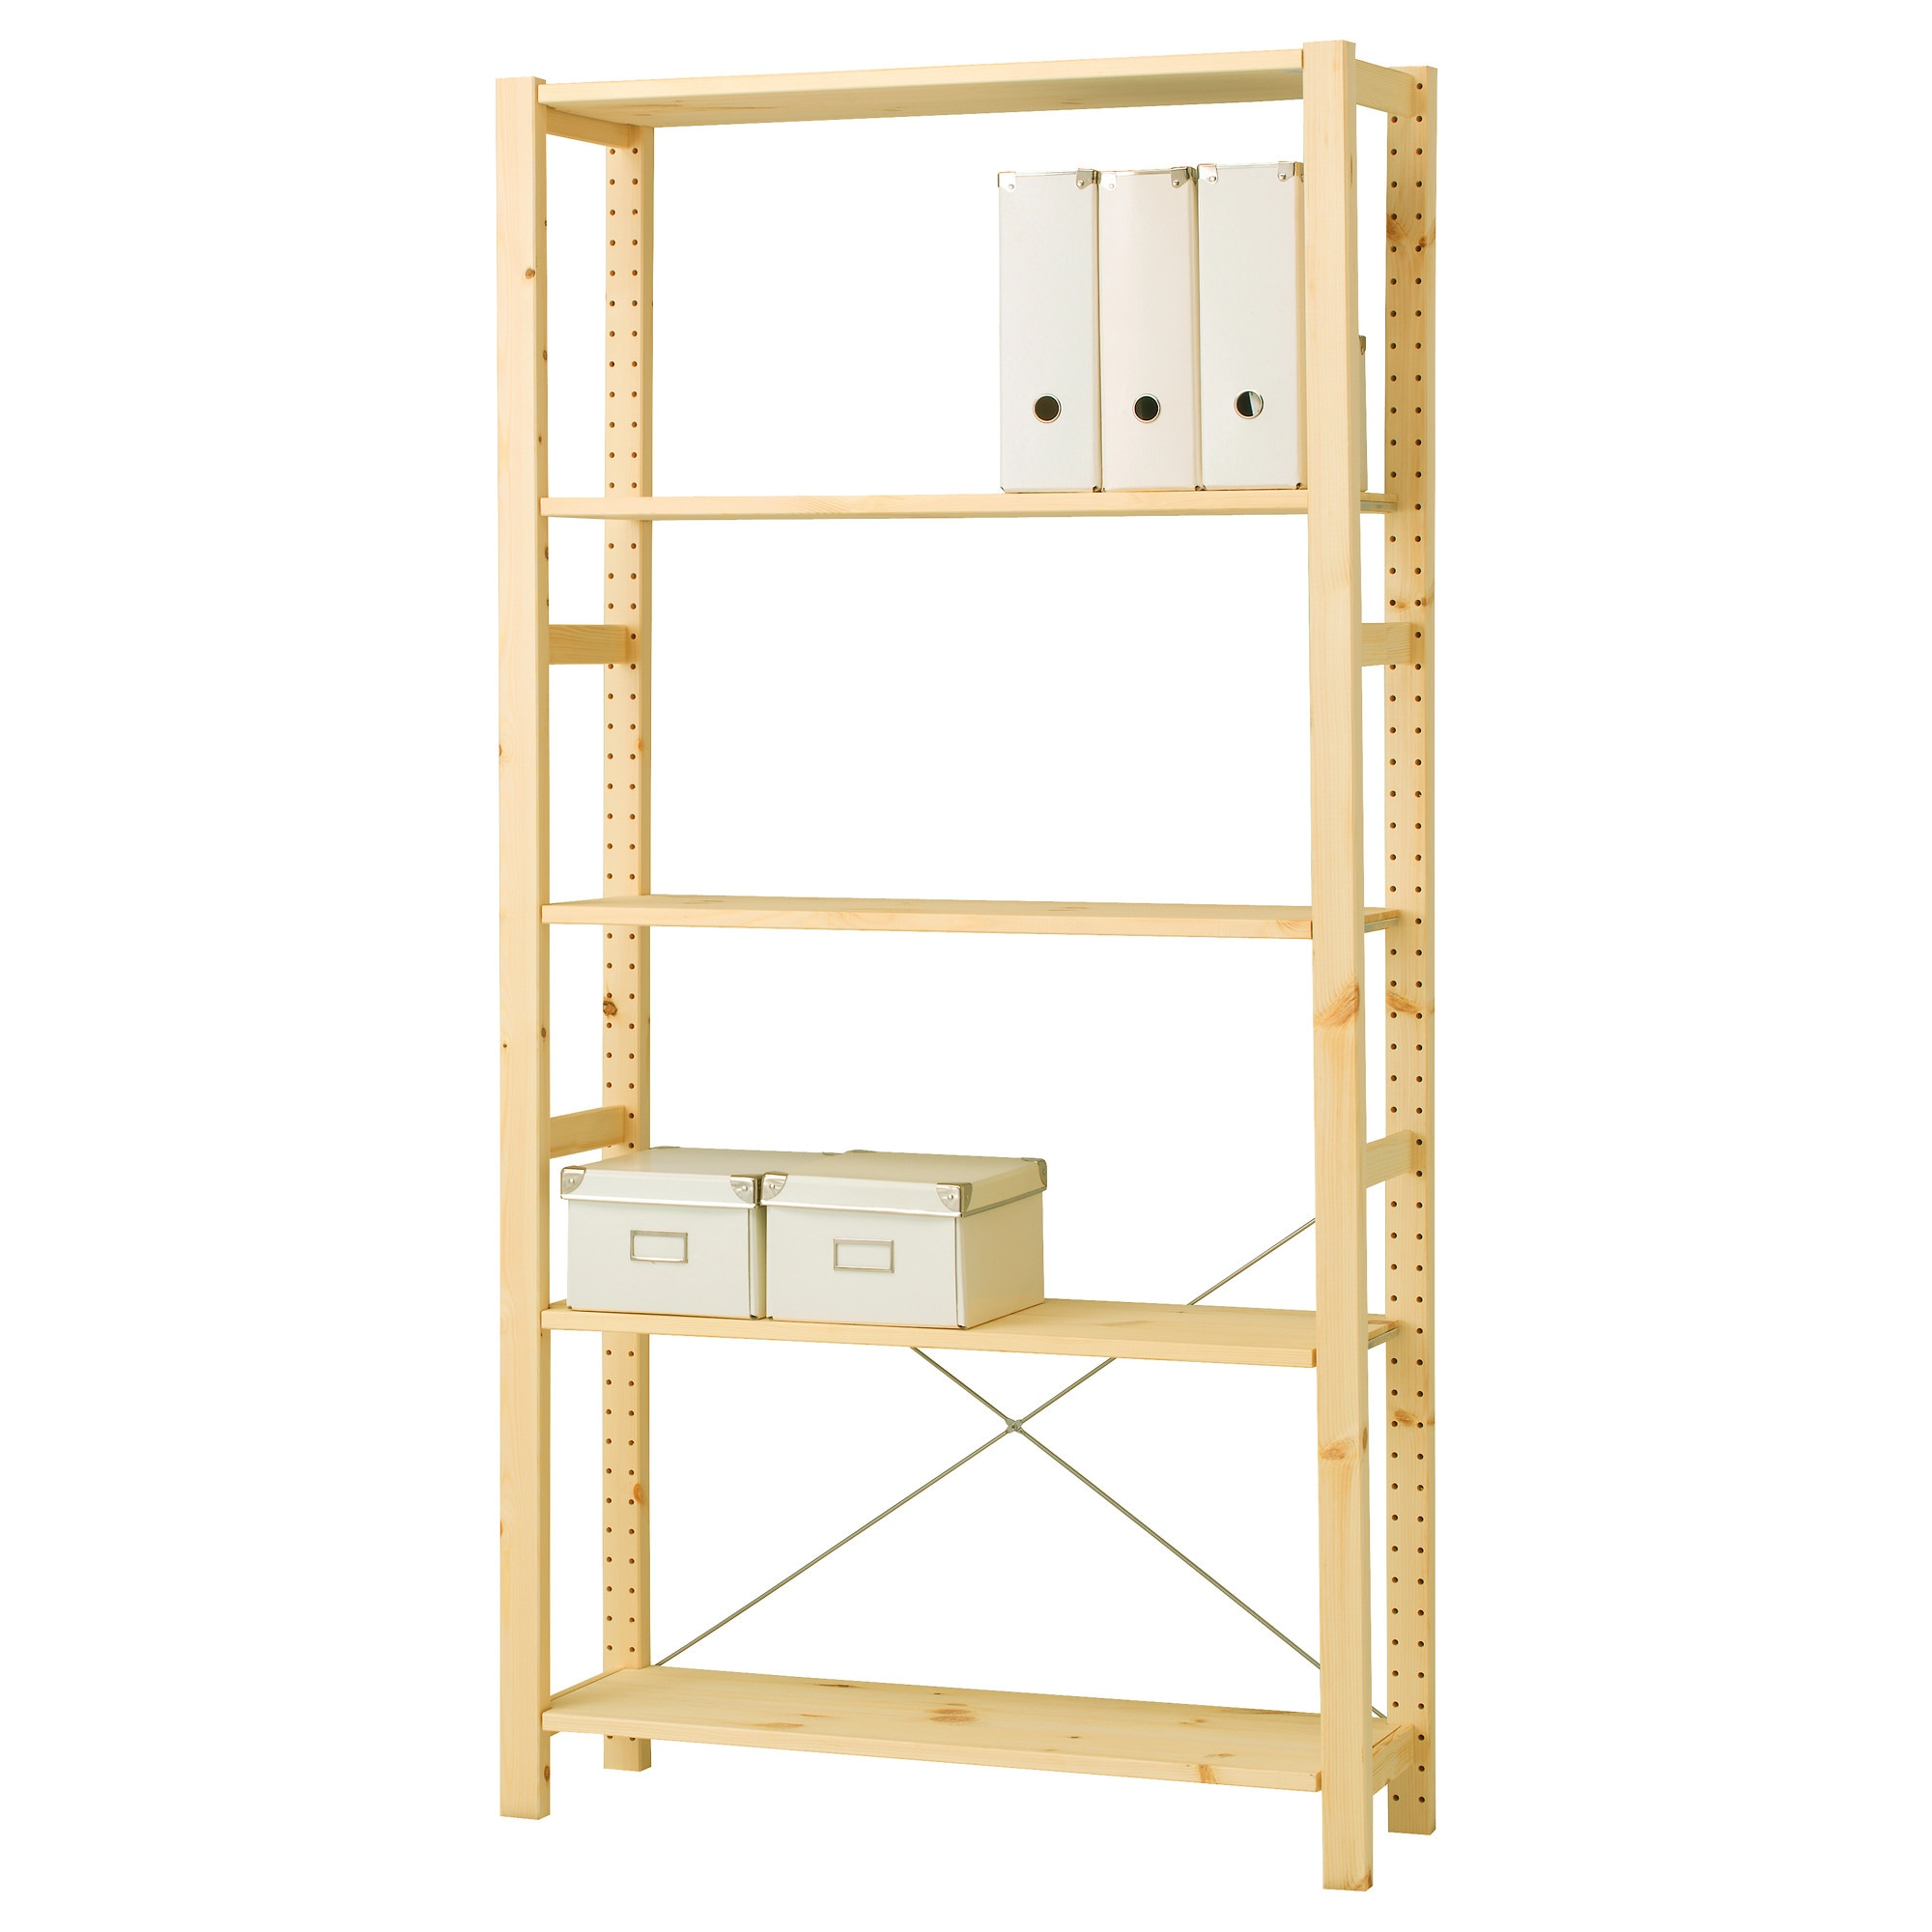 ivar shelving unit - ikea